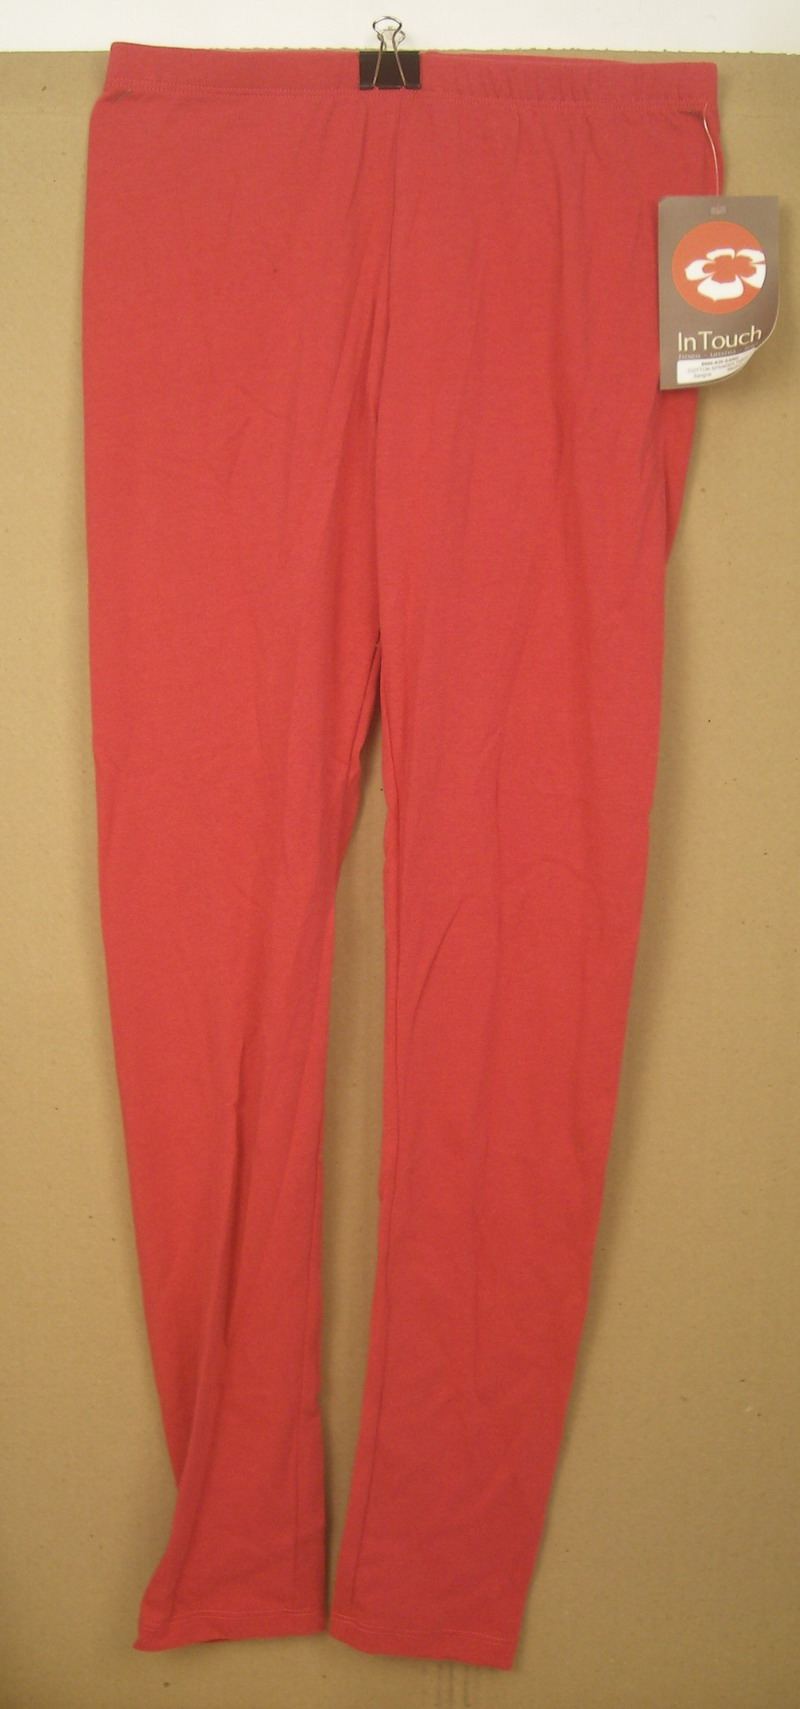 IN TOUCH LADIES COTTON SPANDEX LEGGINGS in SANGRIA-MED